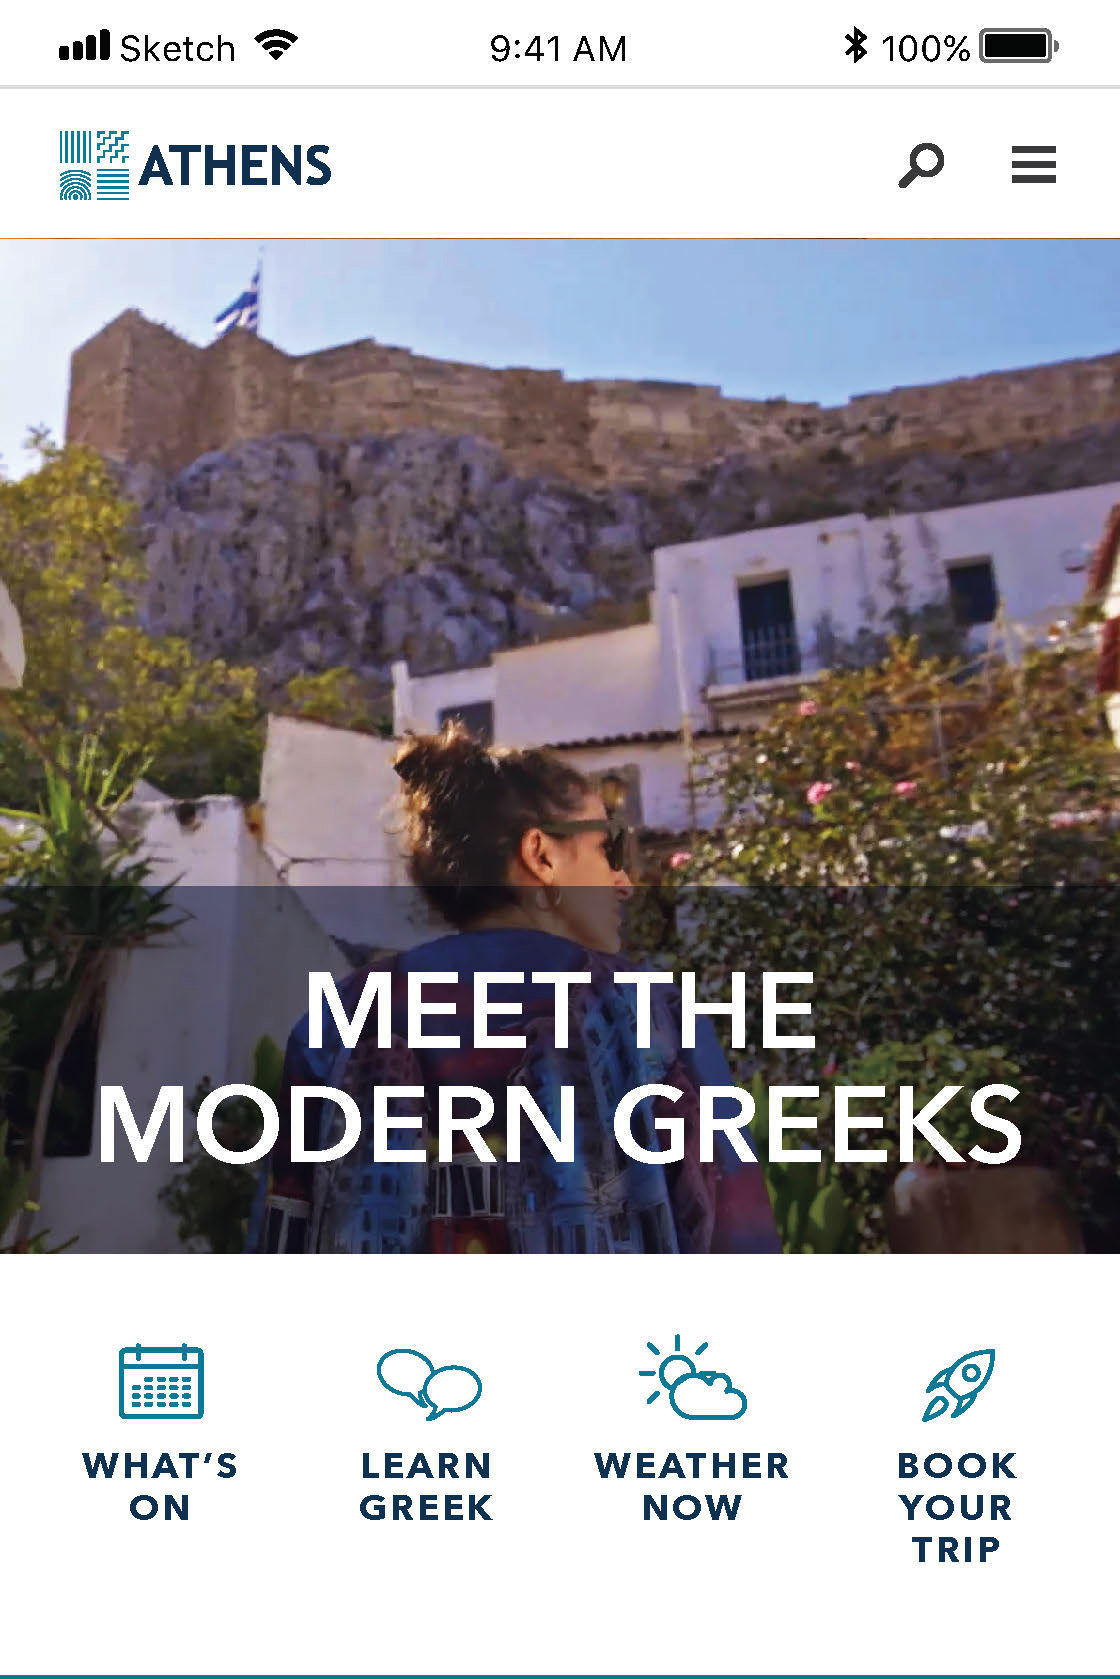 Section of the Athens mobile website.